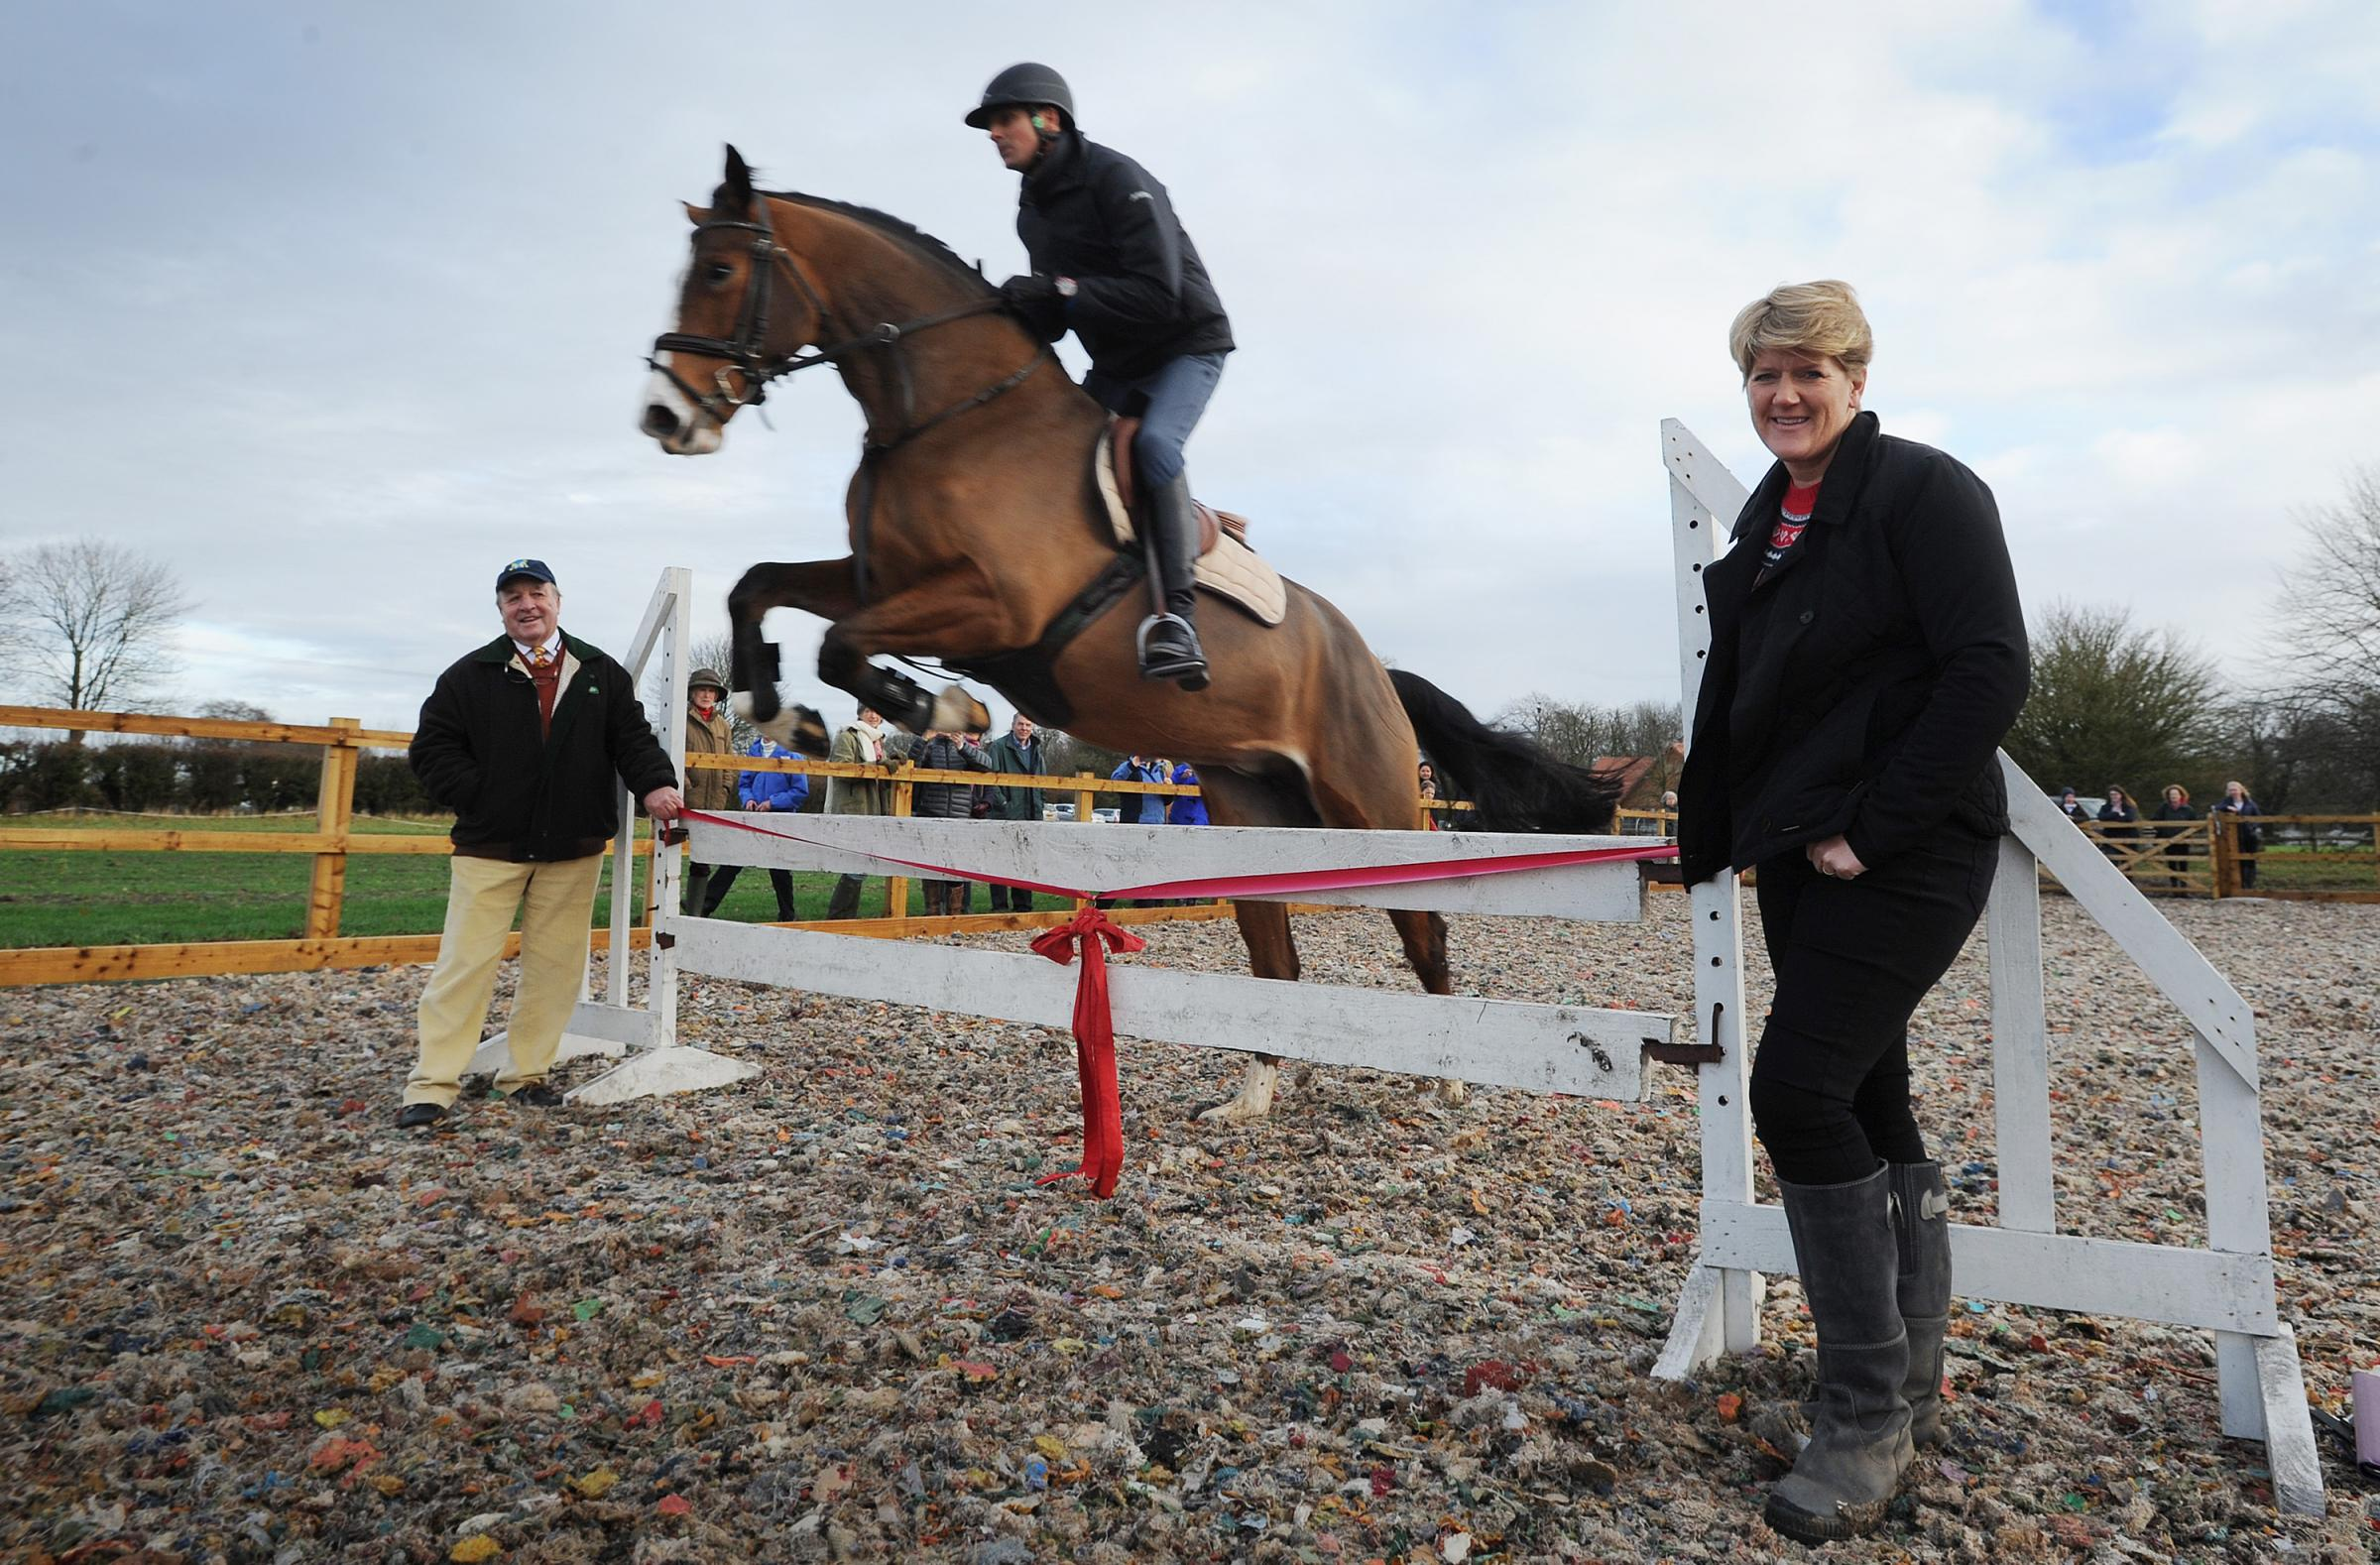 Clare Balding opening the new outdoor school at Letcombe Riding Club. She is pictured holding the ribbon with Richard Pitman as Fox, ridden by Nick Campbell, clears the fence. Picture: Jon Lewis.07.12.2017.